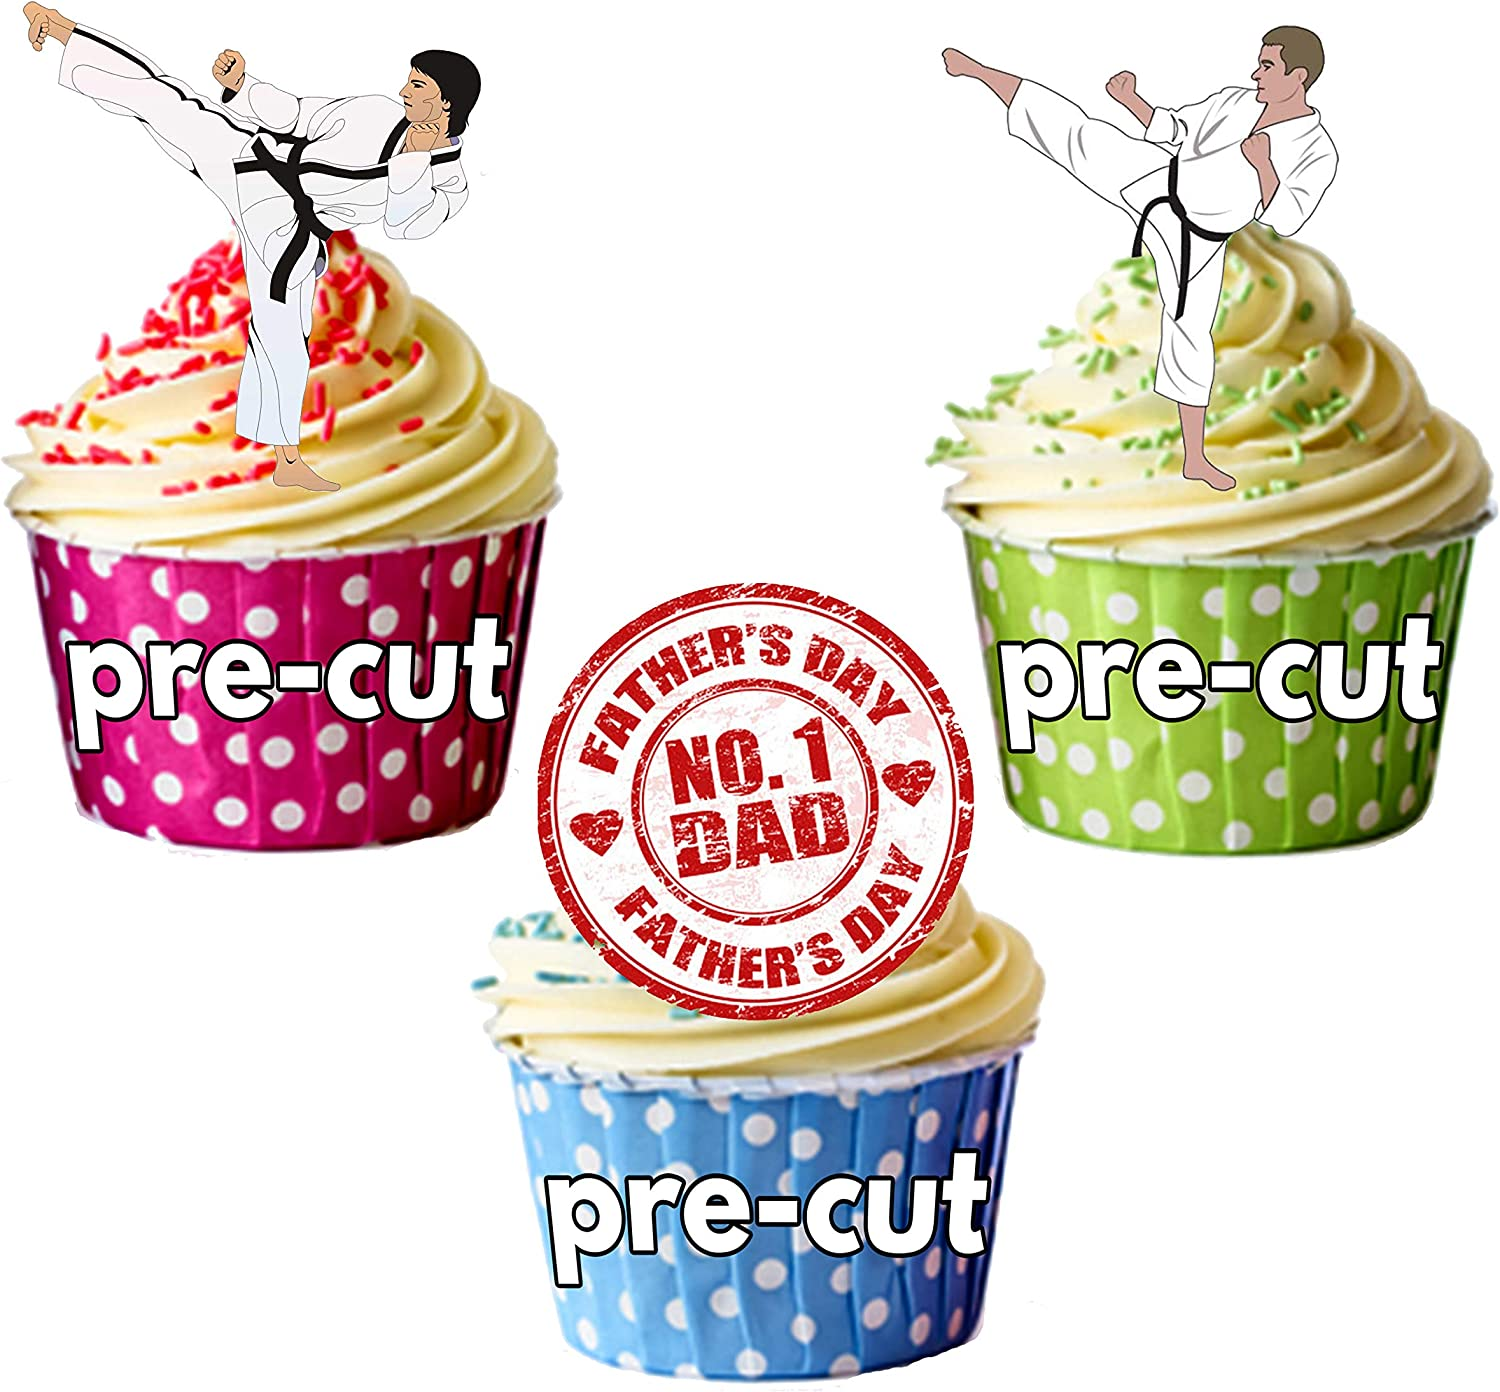 16 Fathers Day Worlds Best Dad STAND UP STANDUP Edible Cup Cake Toppers precut